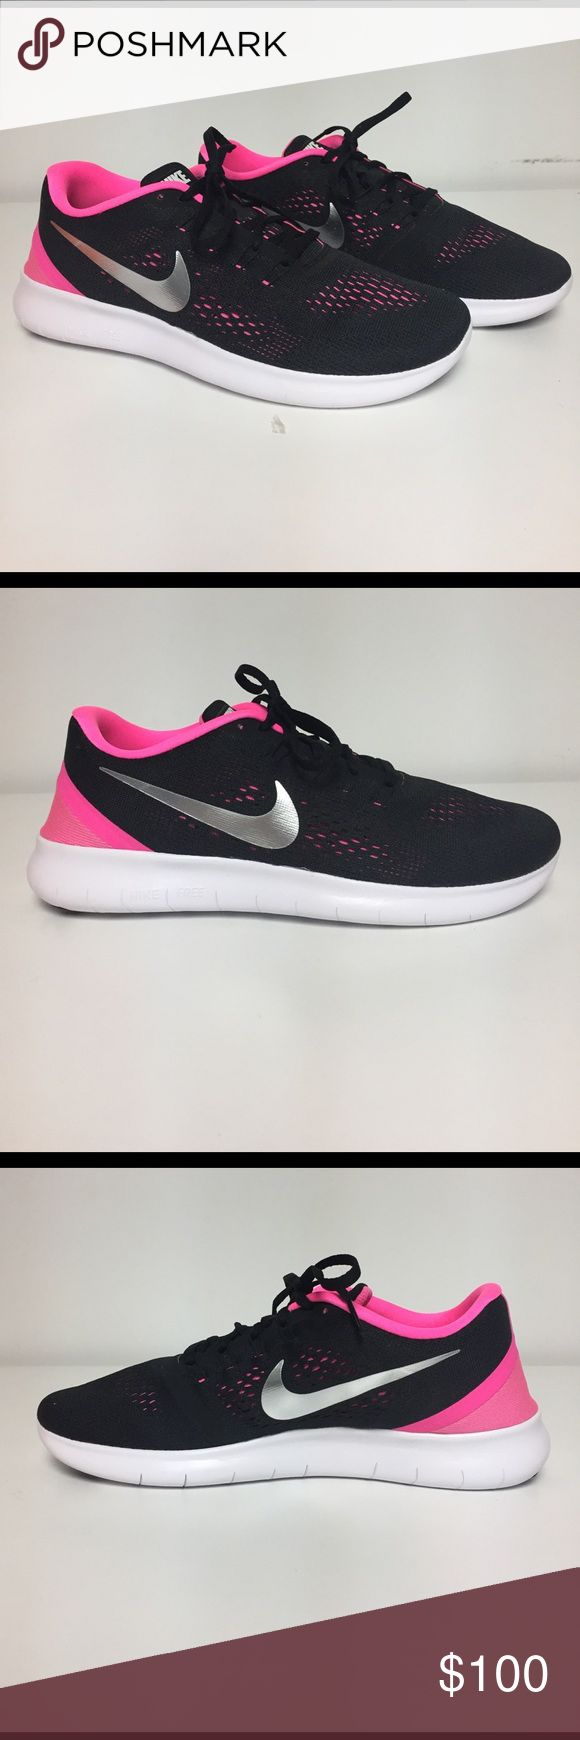 Nike ID Free RN Training Shoes Completely customized with Nike ID! Super cute hot pink and black design. Black laces and white sole. Nike Free which is perfect for training or running. Please note.. these are a men's size 7.5 which will fit a women's size 8.5. Brand New shoes.  No box included. No trades. Nike Shoes Athletic Shoes